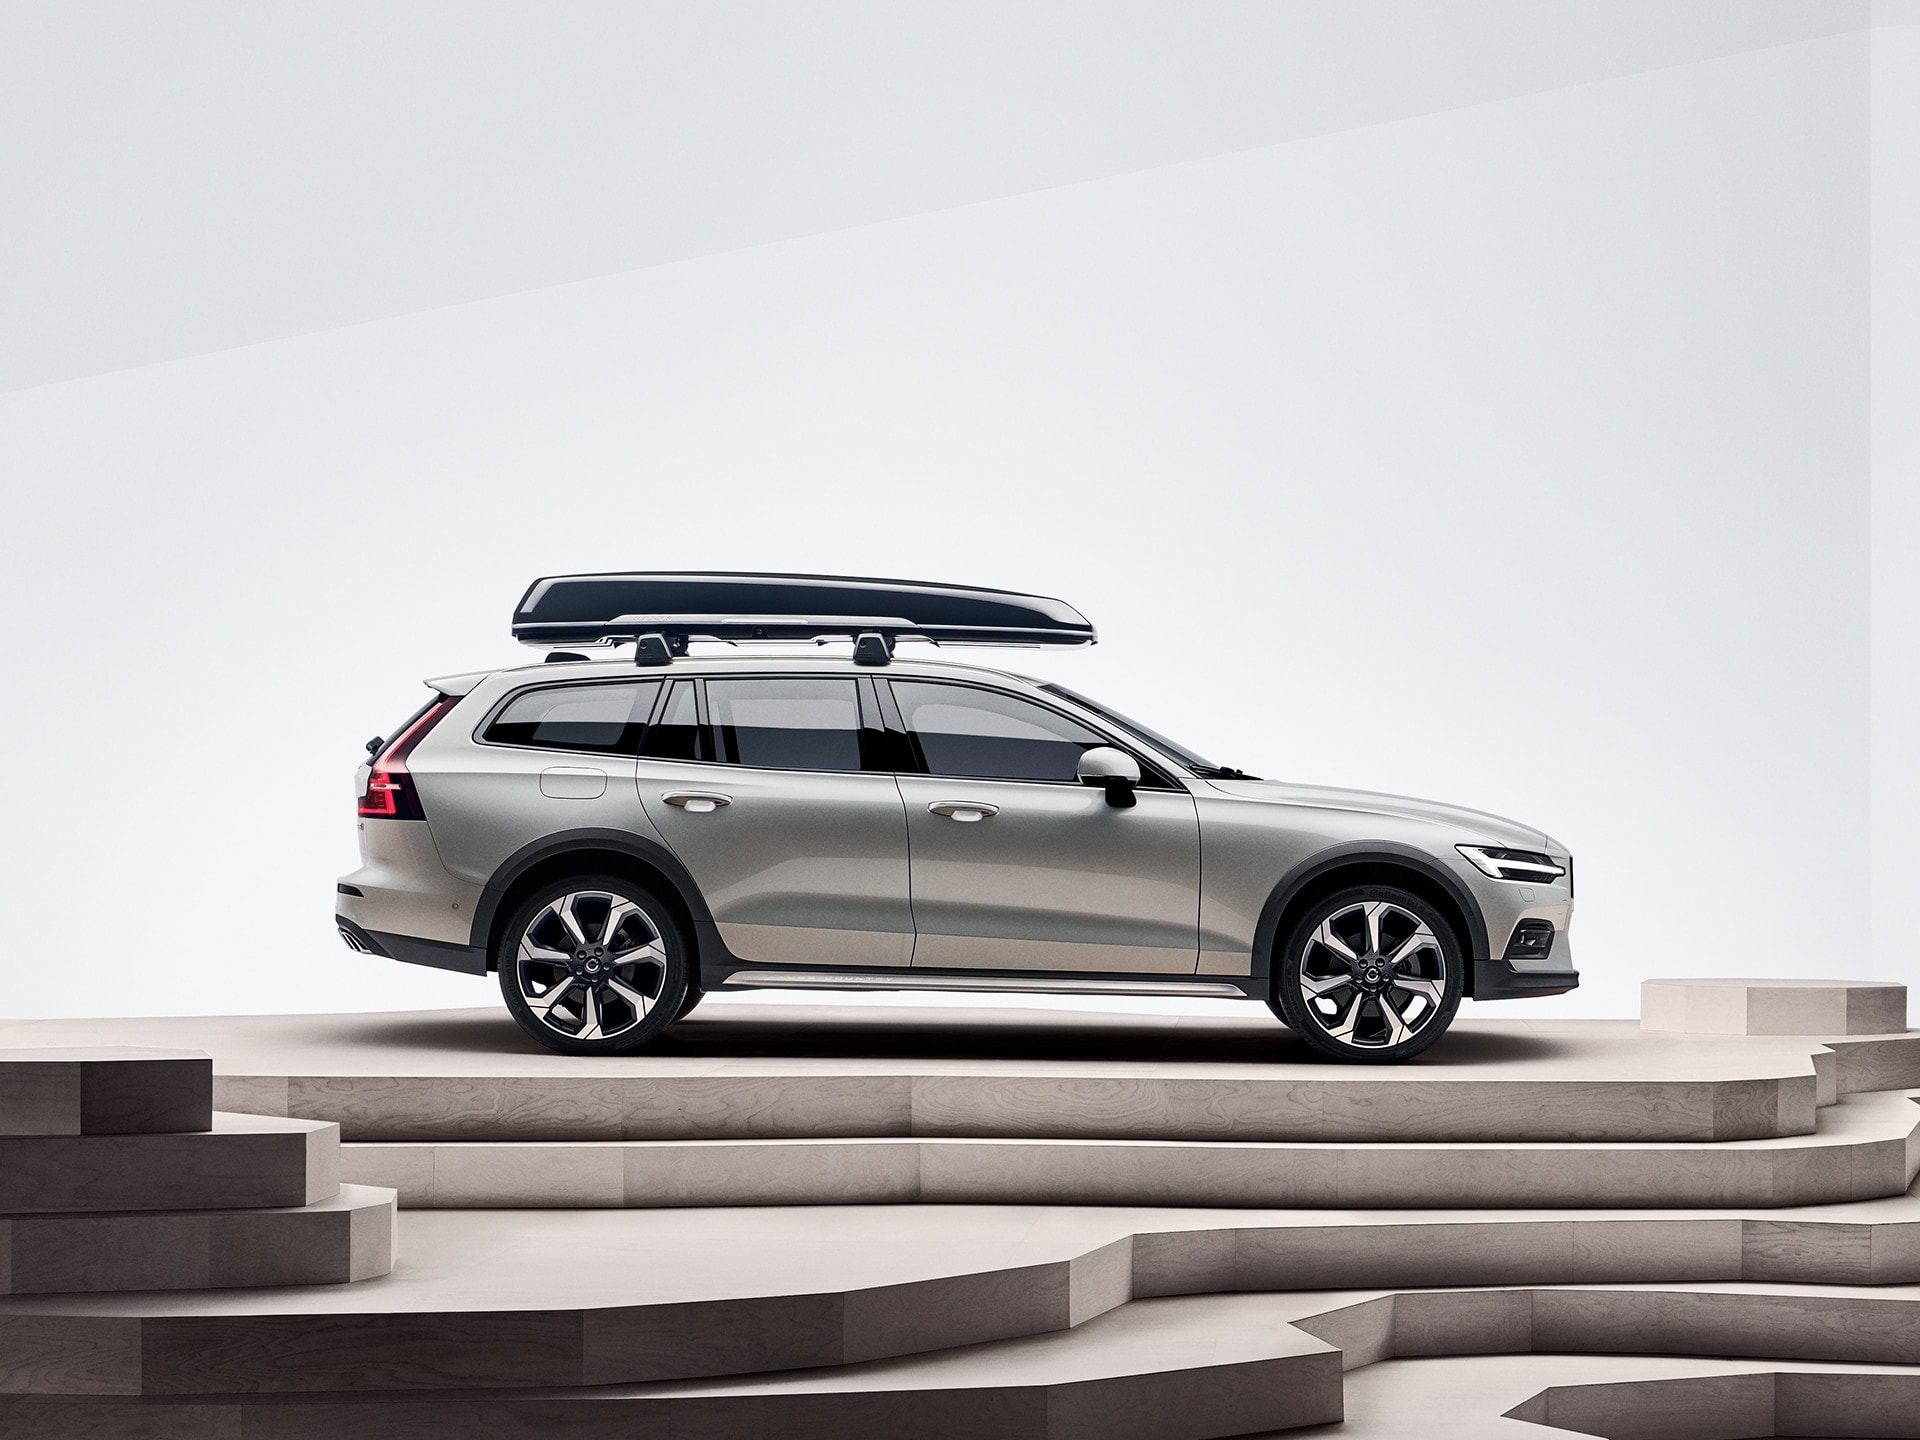 A beige Volvo V60 Cross Country with a roof box is parked on top of a staircase